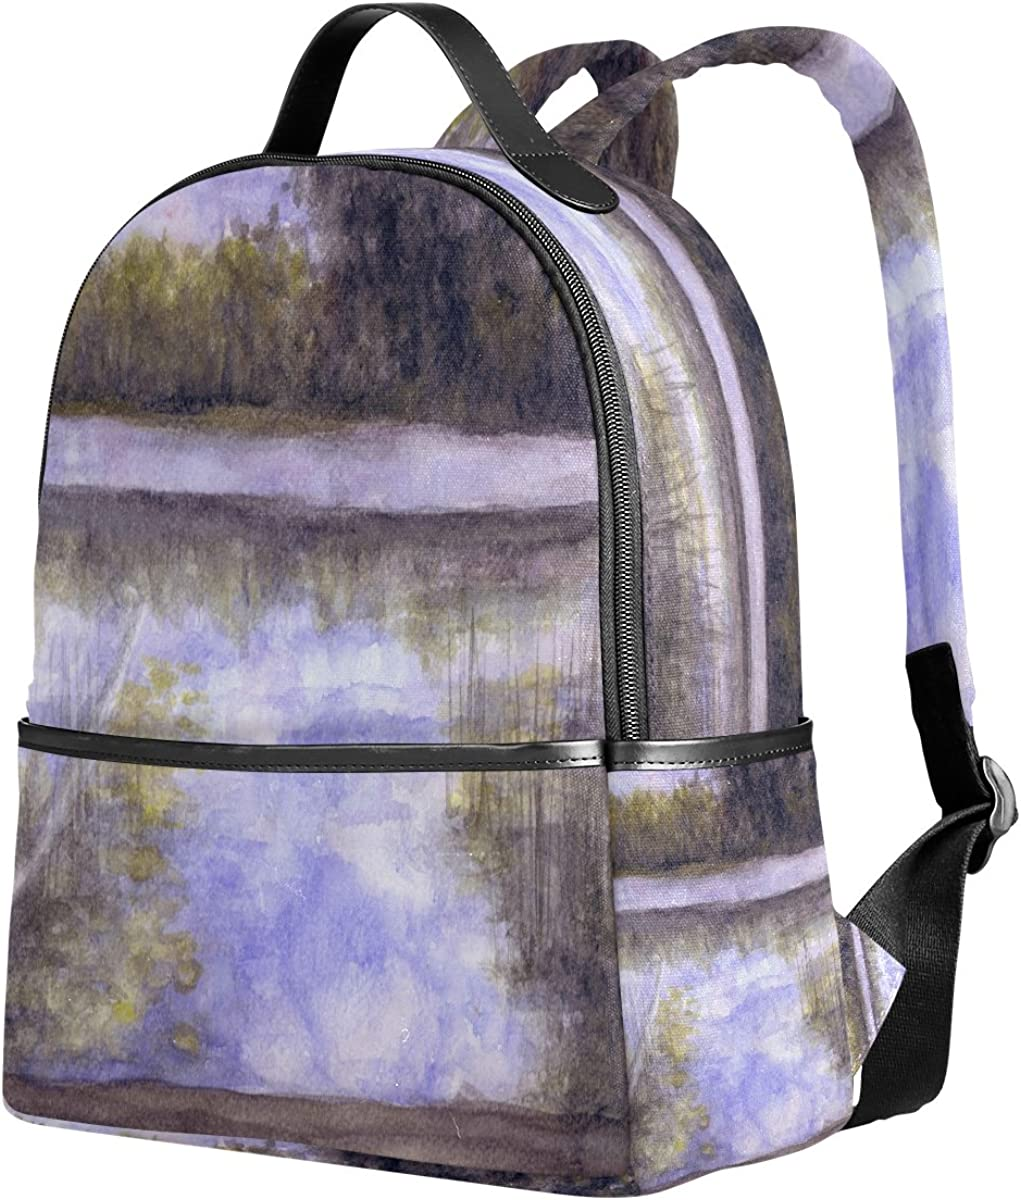 Mr.Weng Watercolor Landscape Printed Canvas Backpack For Girl and Children